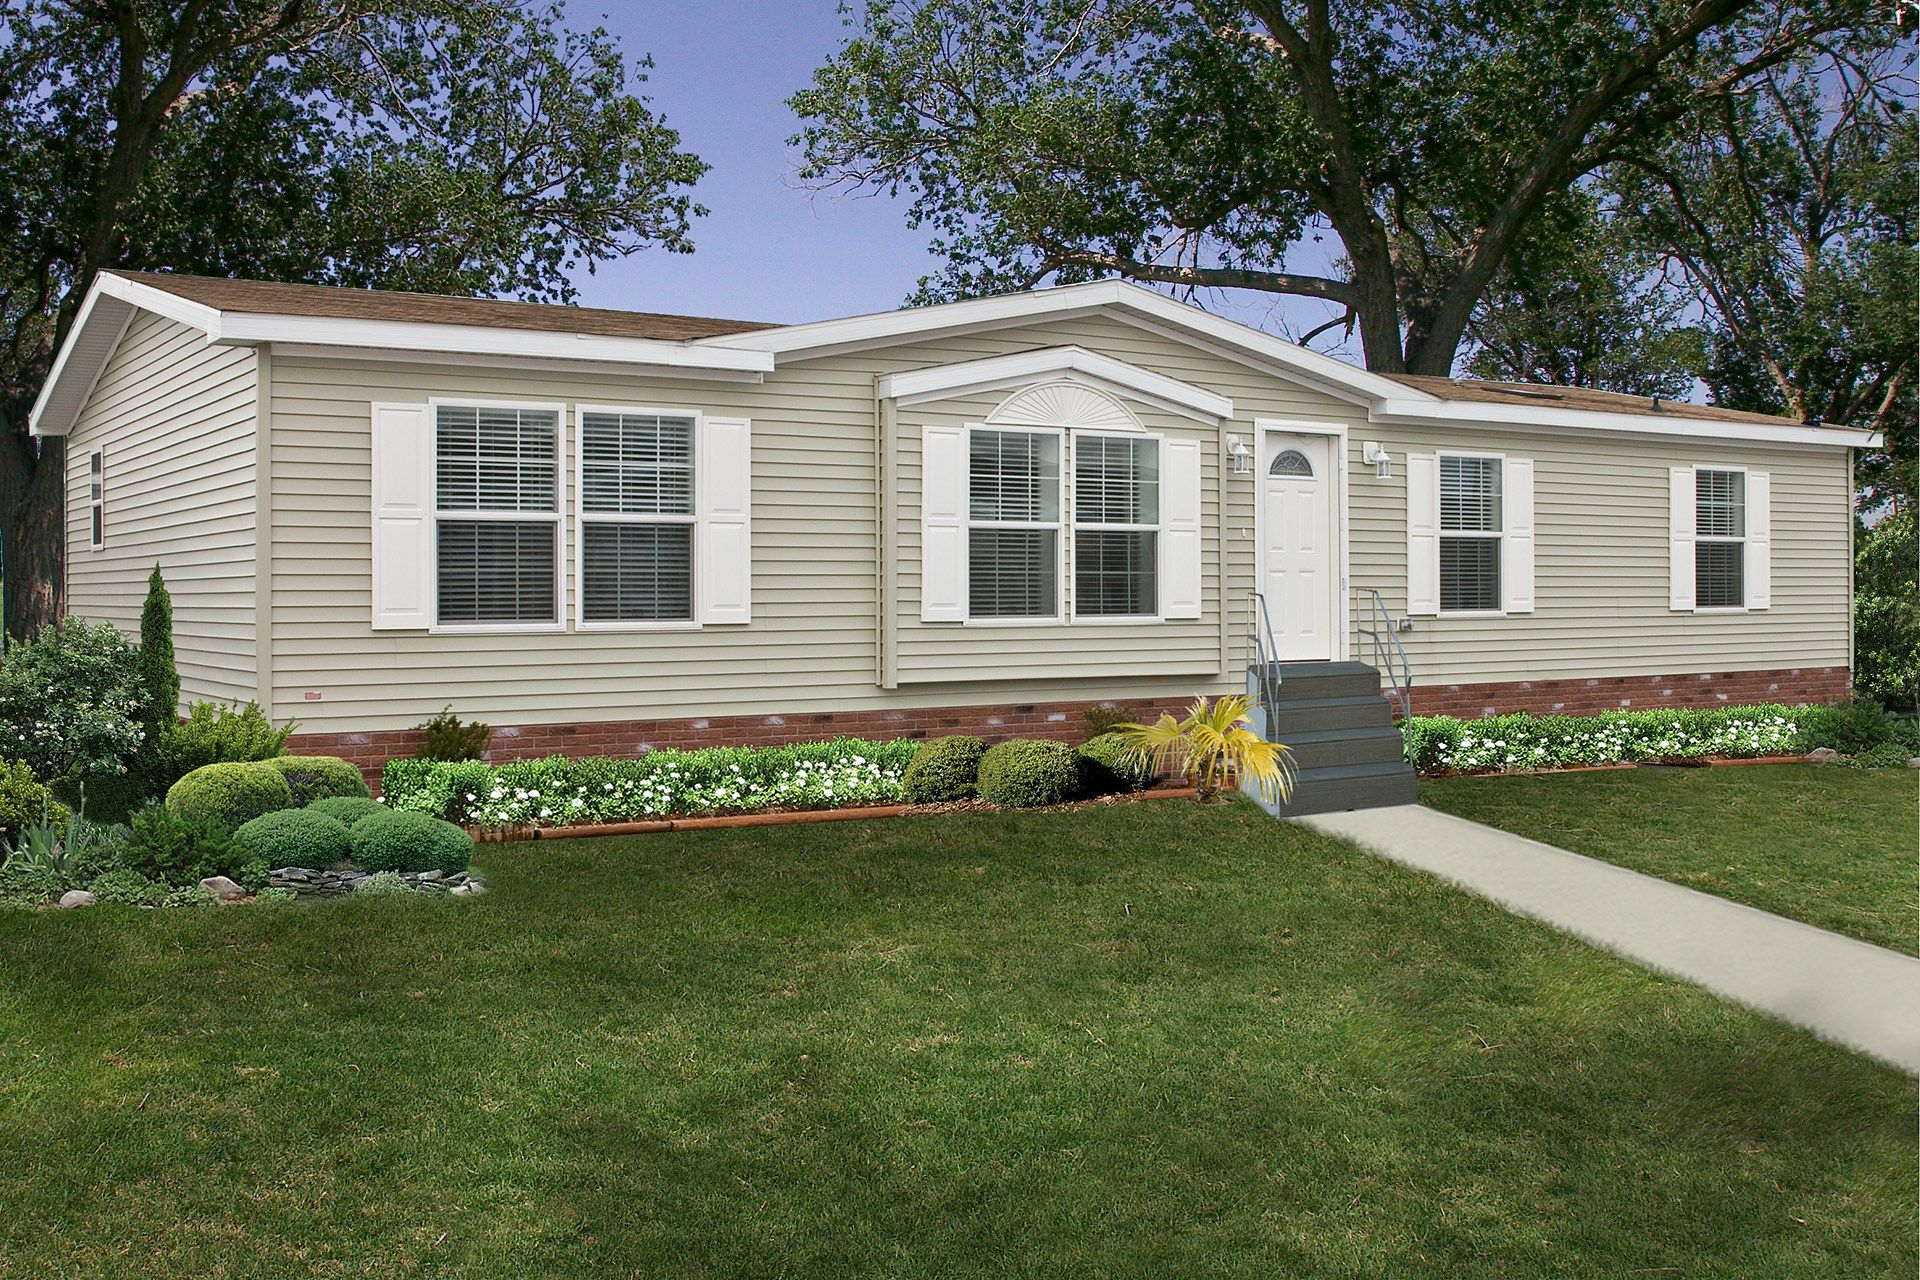 Home Manufactured Home Architectures Photo Pre Constructed Homes Modular Home Modular Homes Top Manufactured Home Modern Homes For Sale Home Exterior Makeover